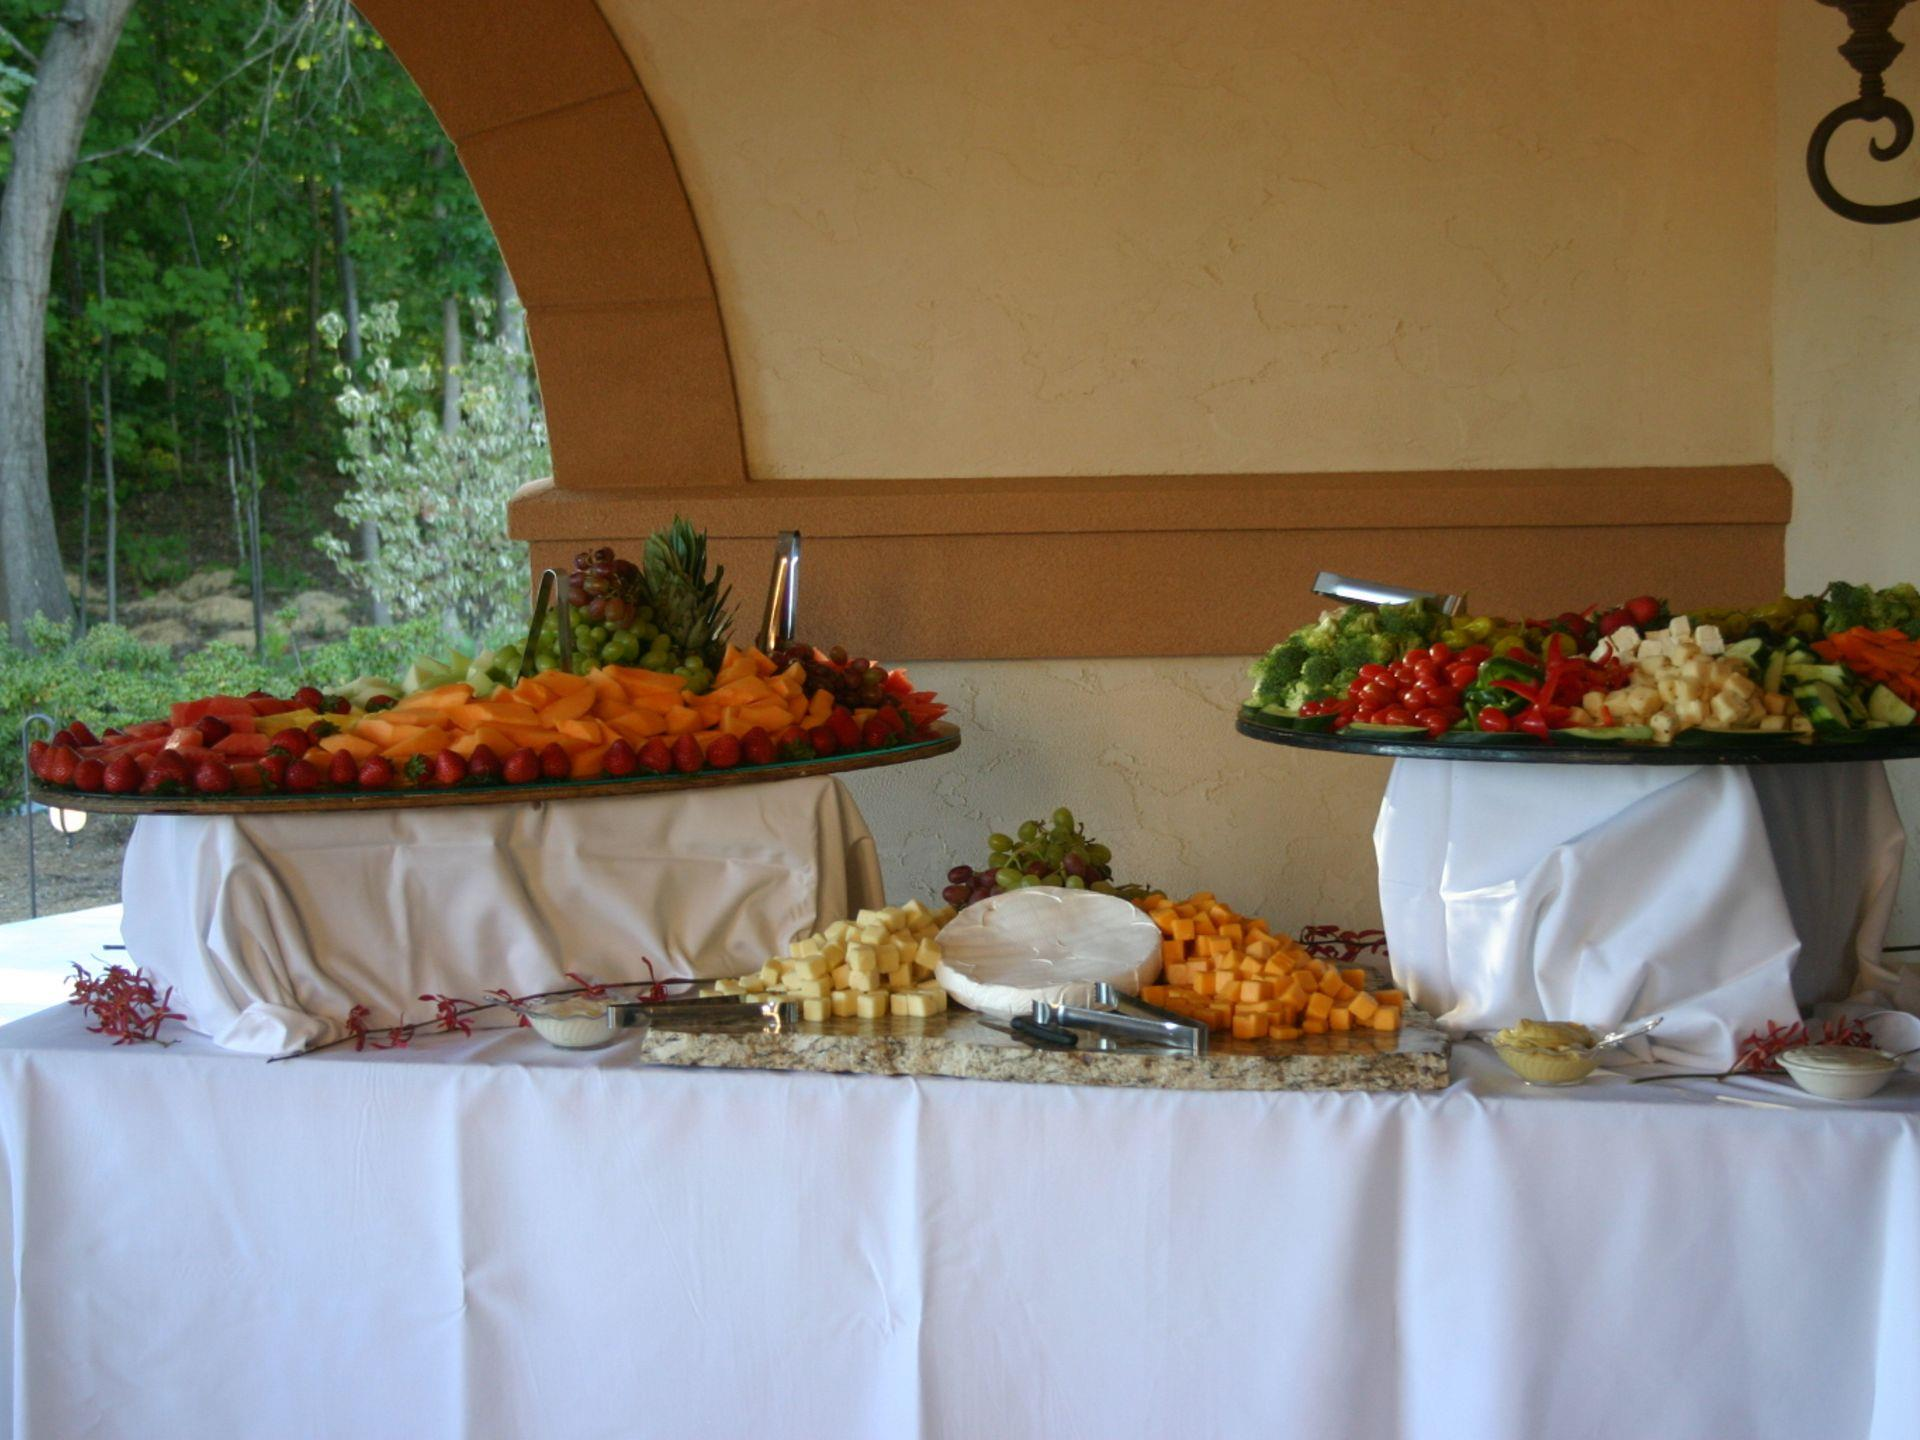 Catering display with assorted fruits, vegetables and cheeses